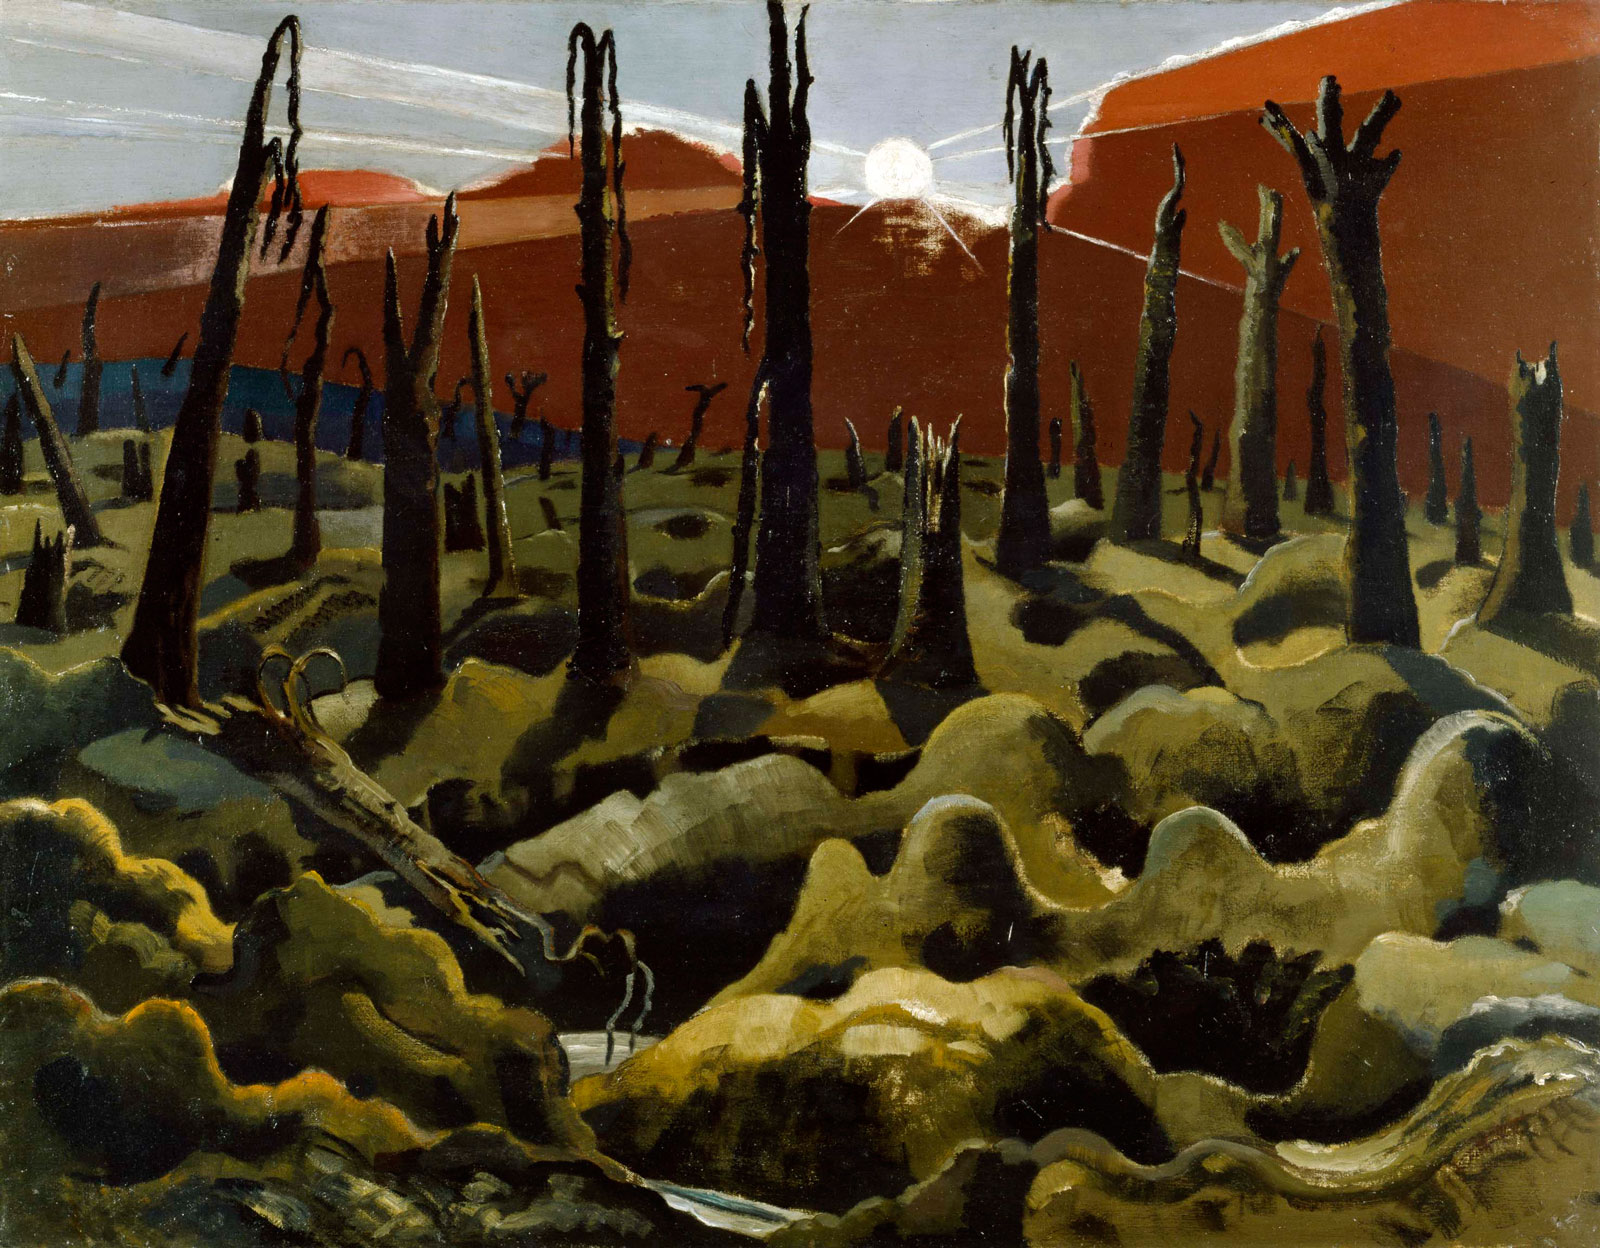 Paul Nash: We are Making a New World, 1918